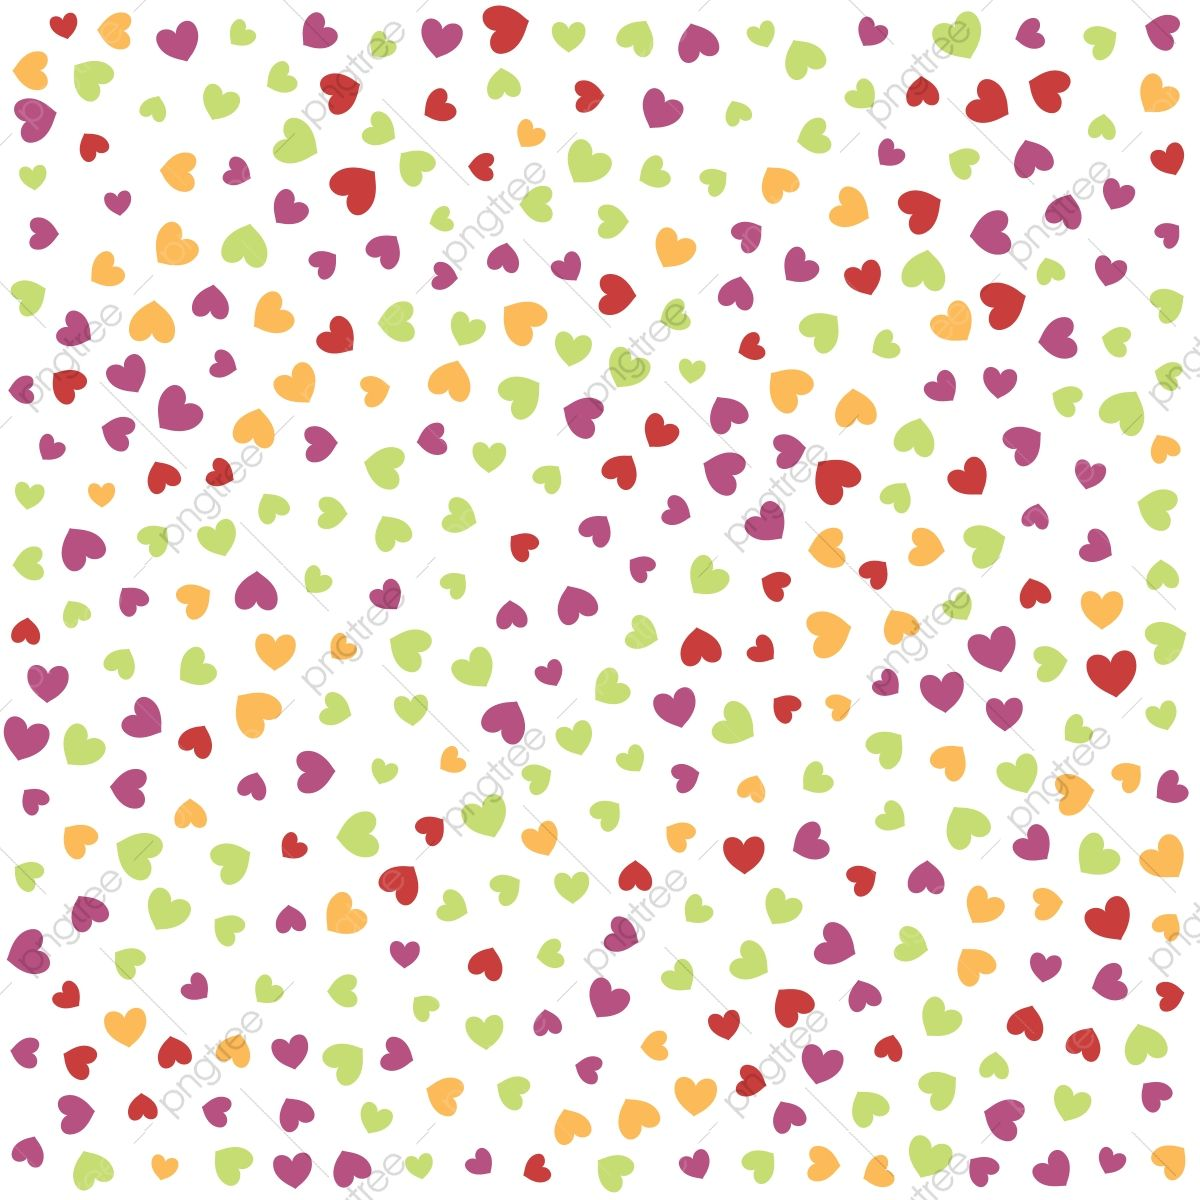 Colorful Vector Hearts Pattern Logo Love Romance Png And Vector With Transparent Background For Free Download Heart Patterns Paint Splash Background Seamless Pattern Vector